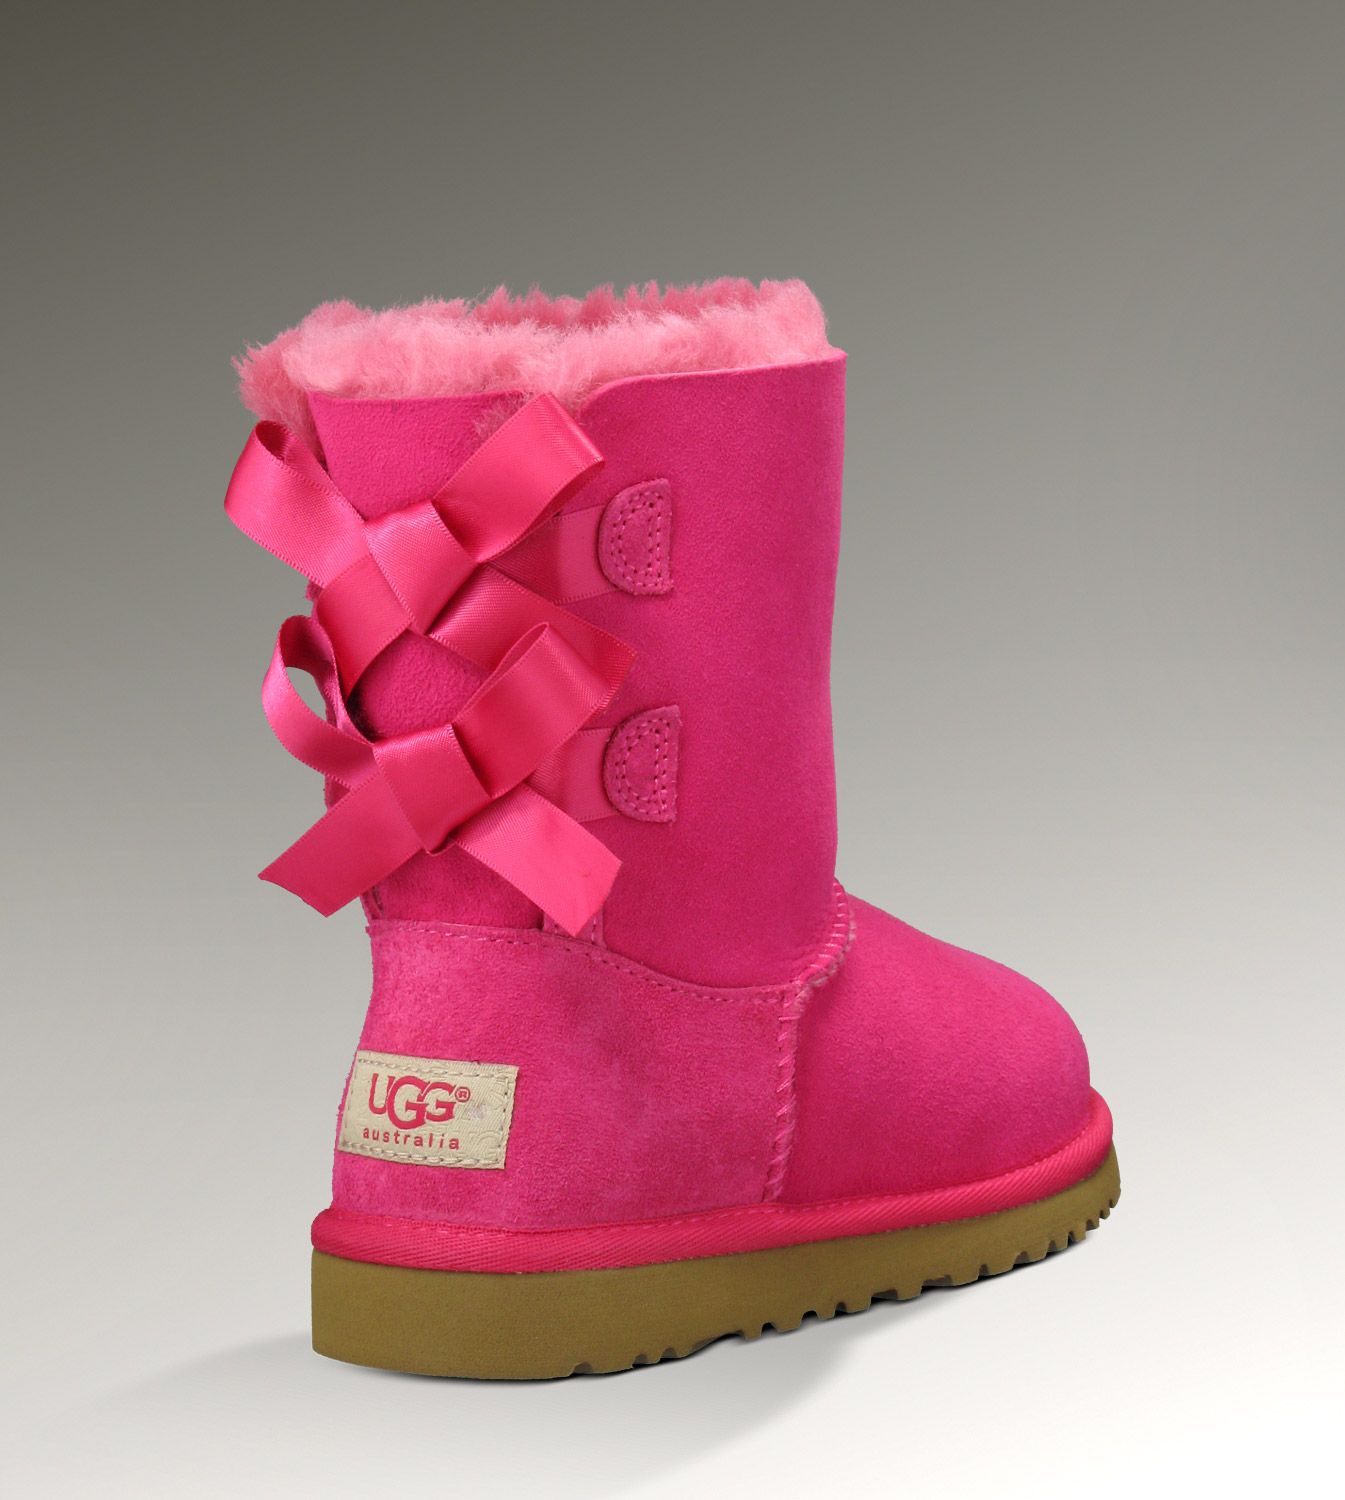 Really cheap ugg boots - Very Cheap Ugg Boots